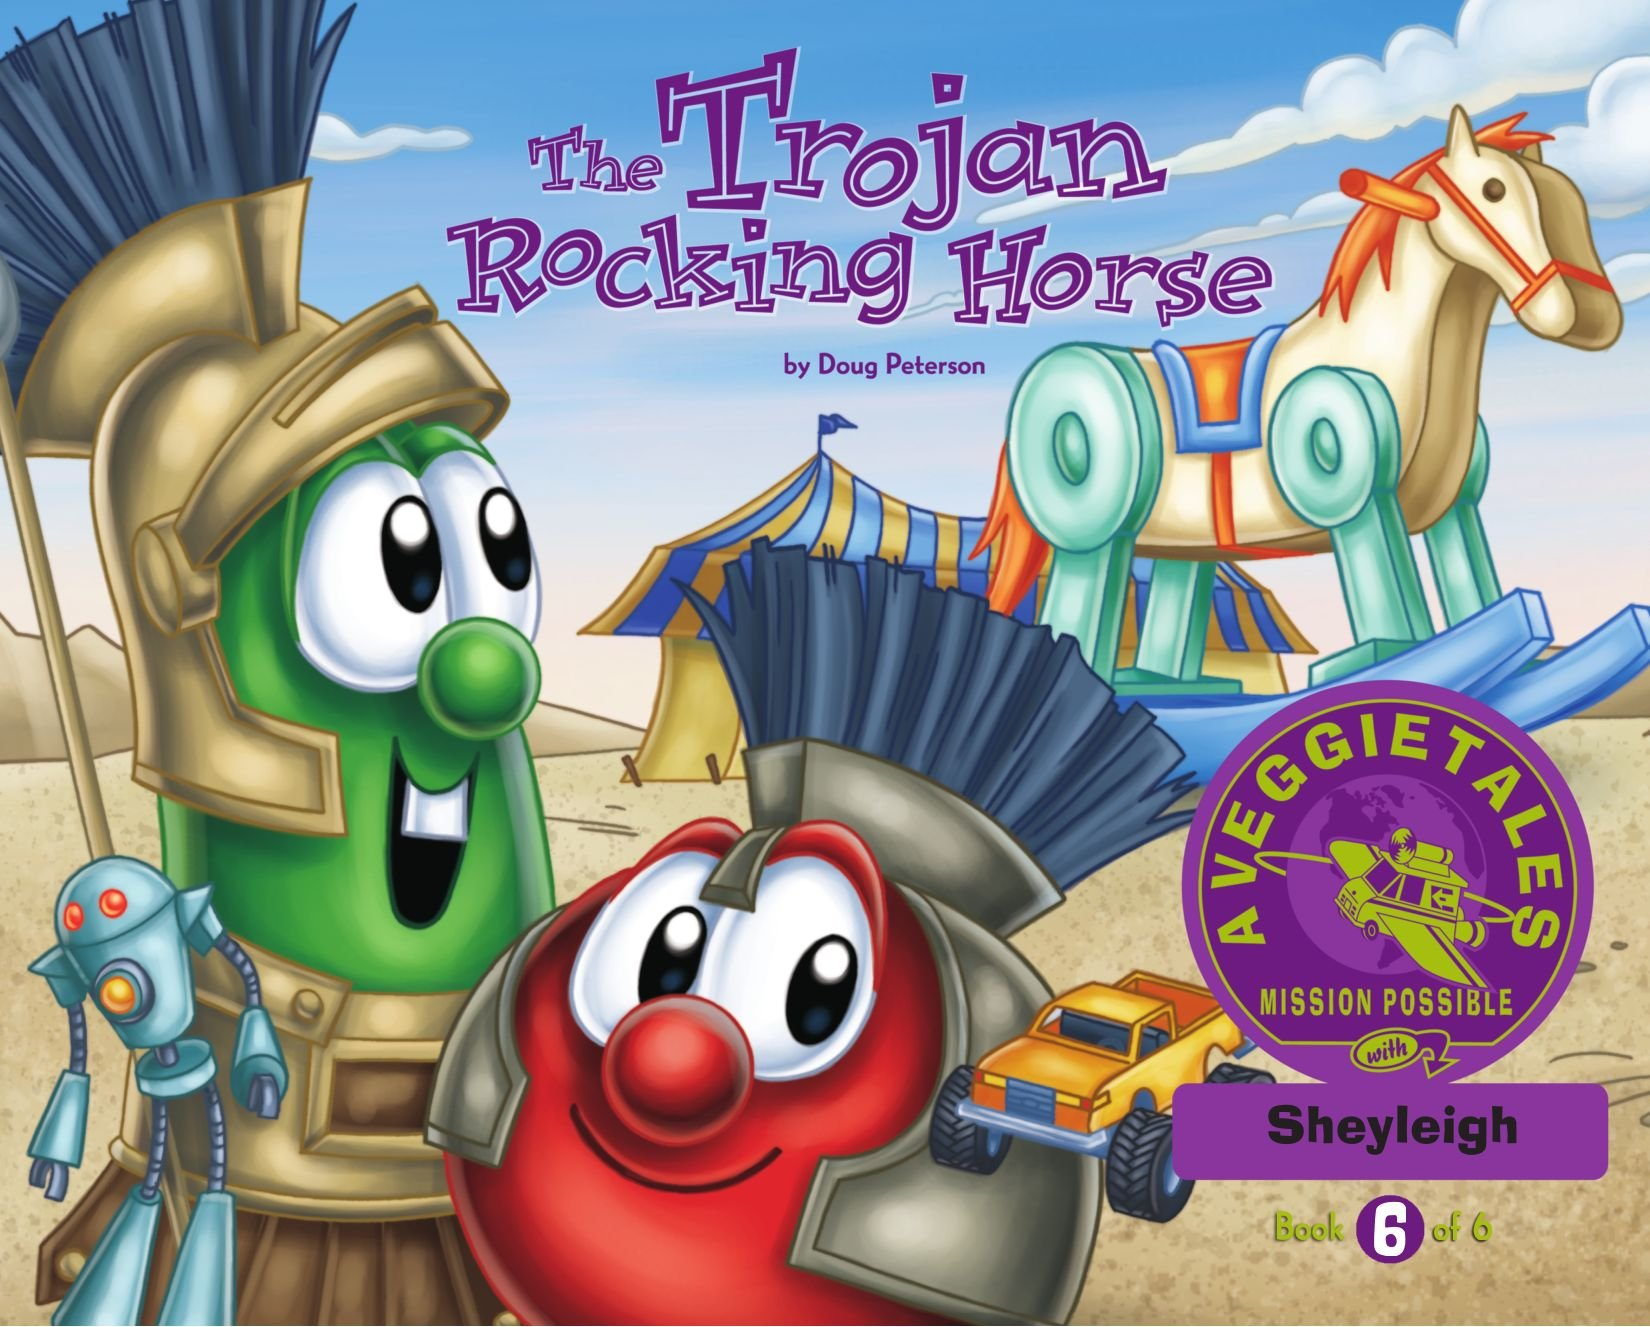 Download The Trojan Rocking Horse - VeggieTales Mission Possible Adventure Series #6: Personalized for Sheyleigh (Girl) pdf epub